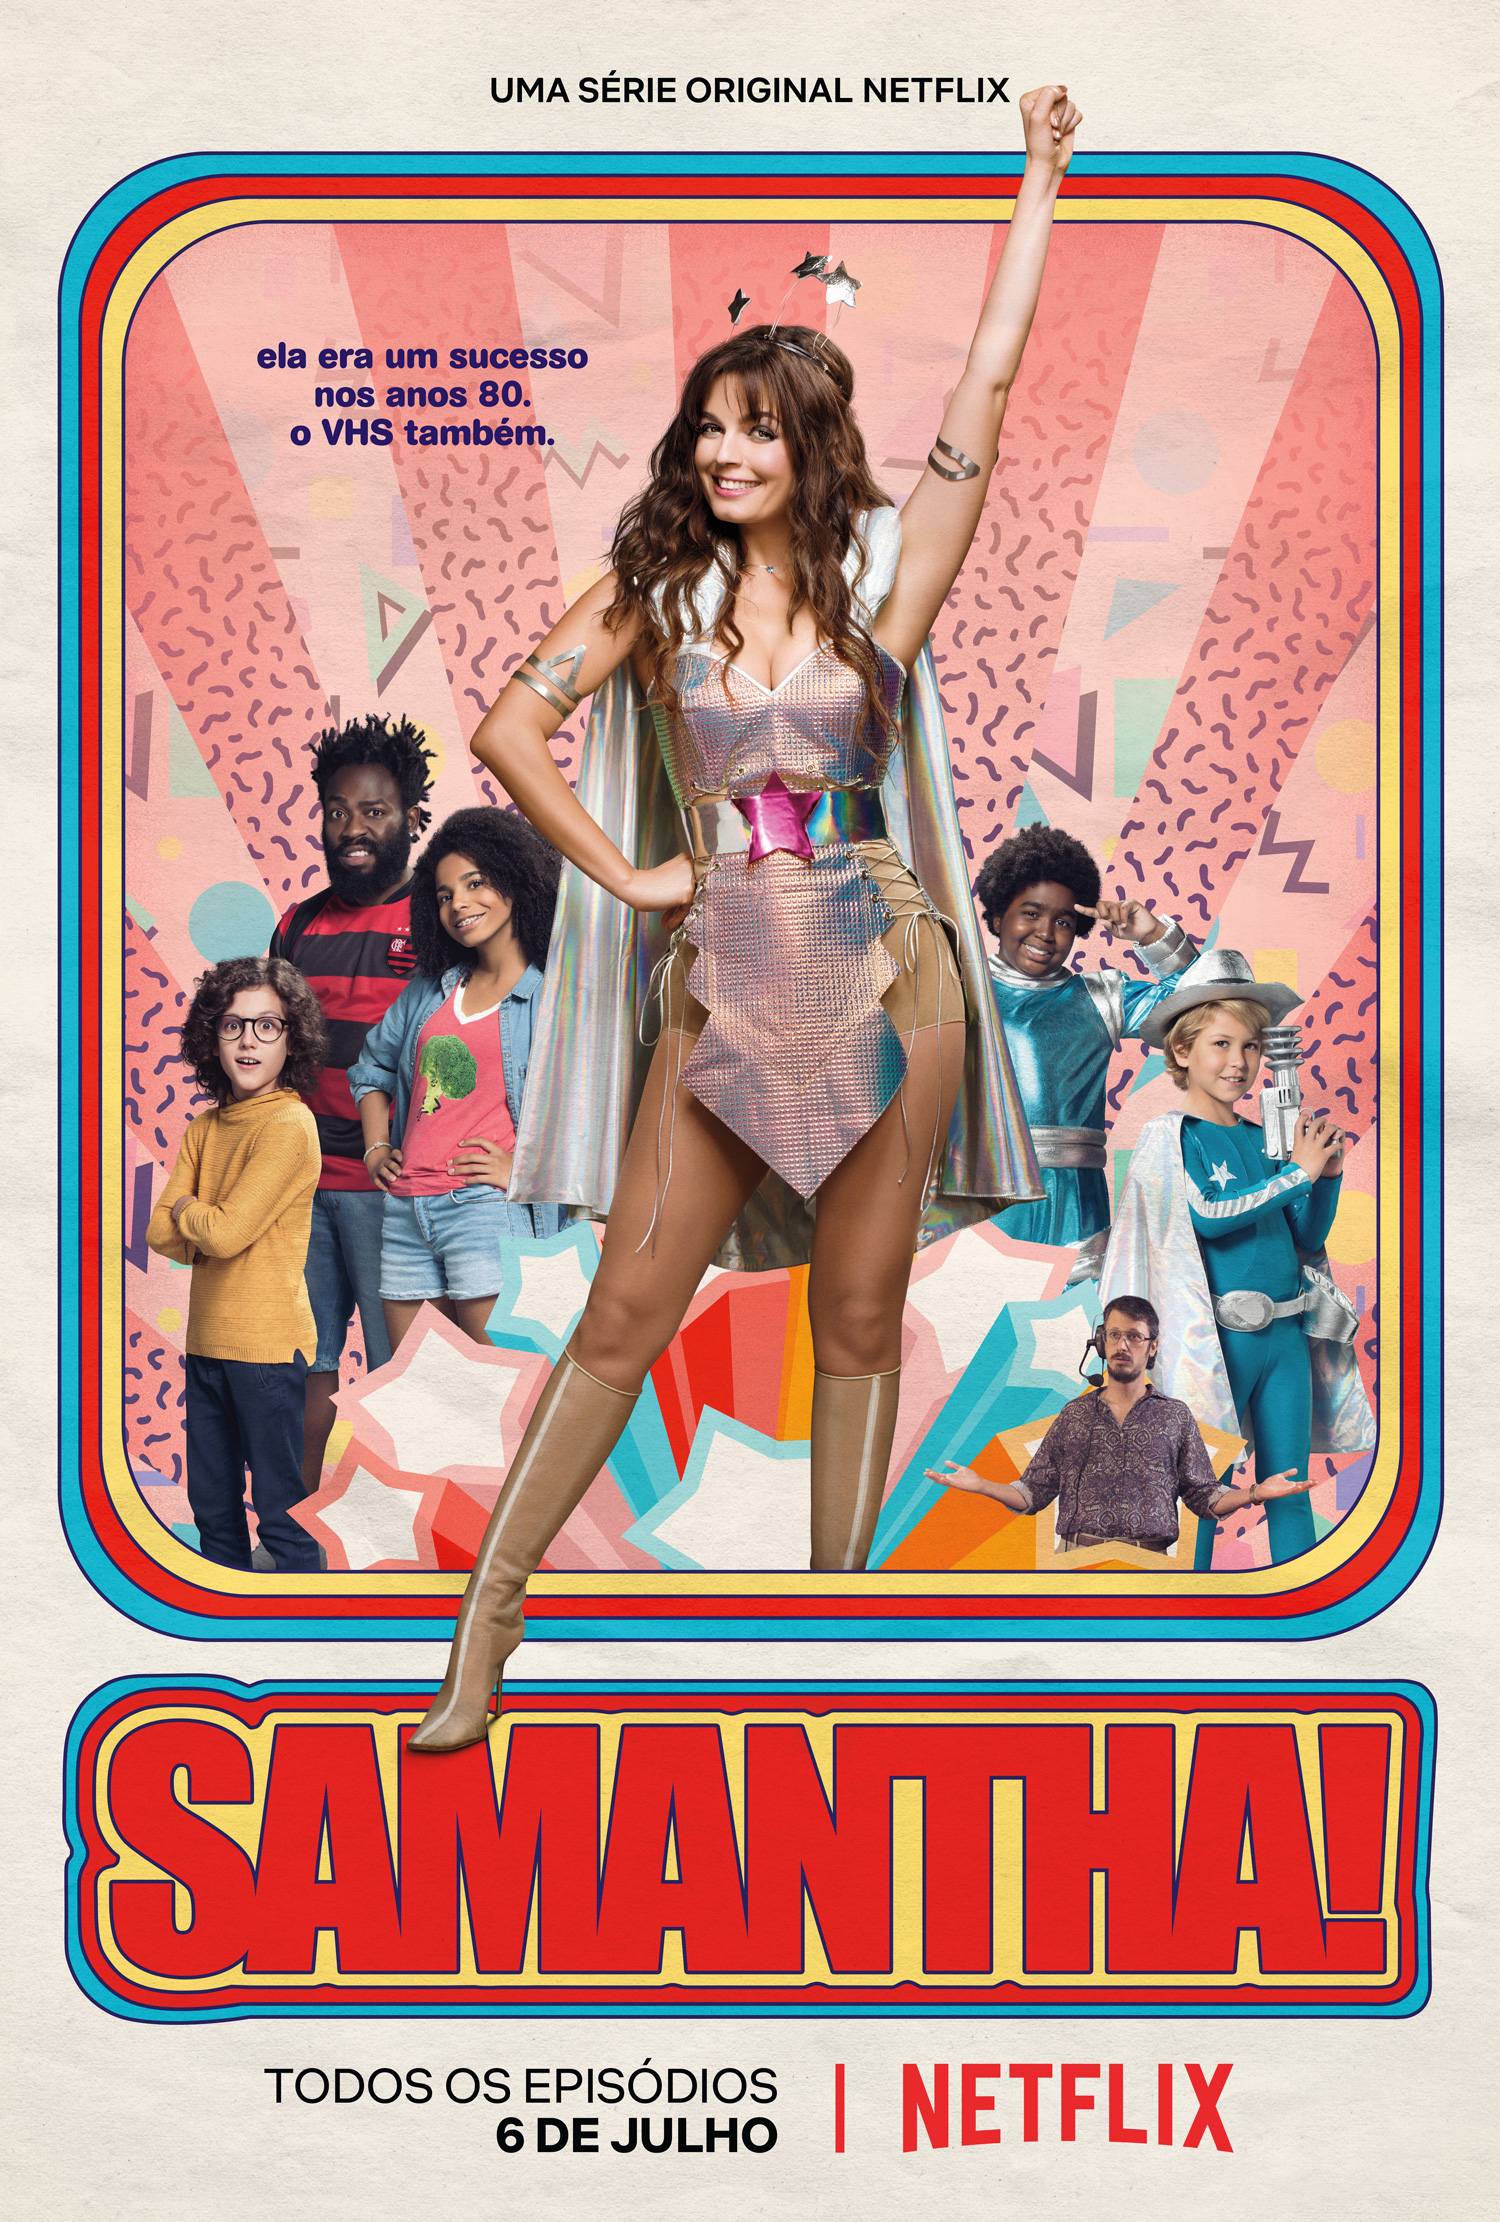 Samantha! – Season 1